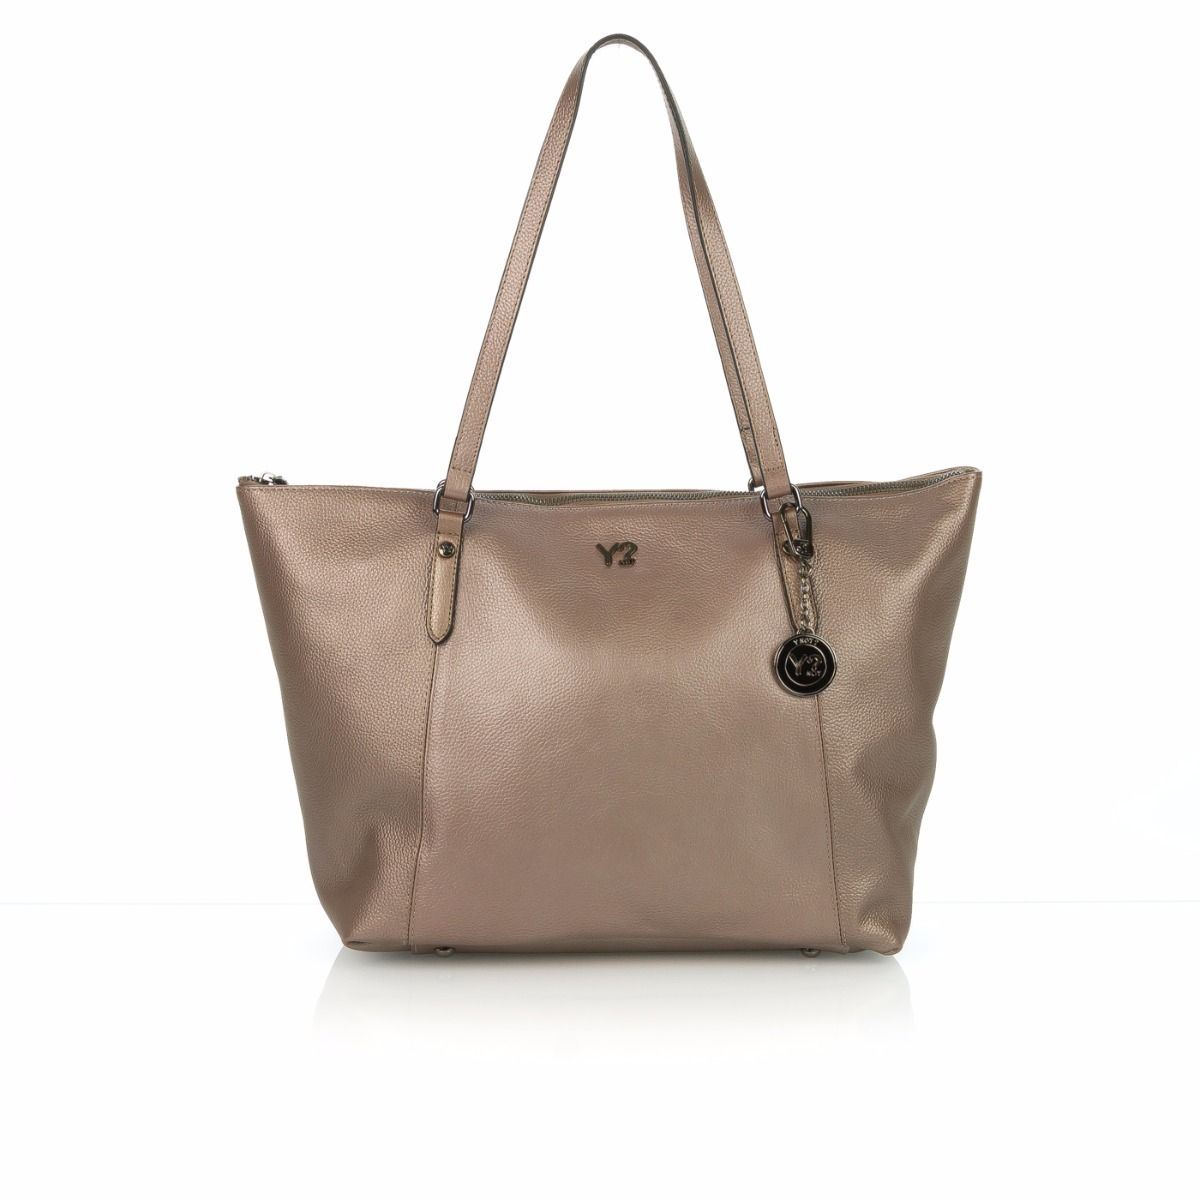 7d9cec03a3 Y-NOT SHOPPING BAG DONNA SL04 PELLE ROSA METALLIZZATO